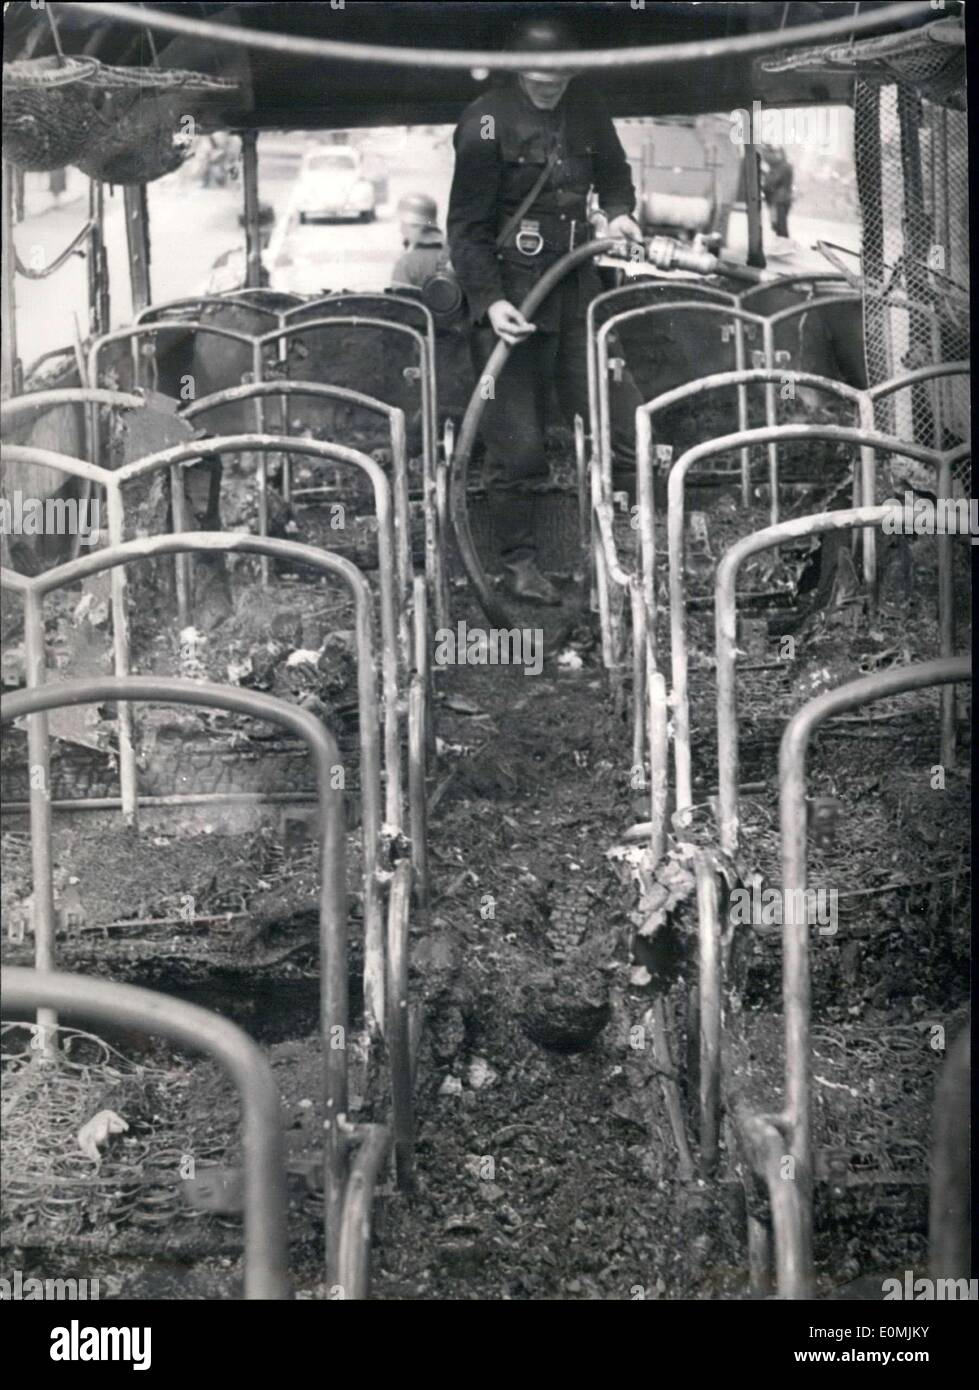 Jun. 11, 1955 - An omnibus from Holland loaded with children suddenly went up in flames. Two children were killed and 19 more were injured, 7 life-threateningly so. Pictured is the inside of the bus, completely burned. Stock Photo